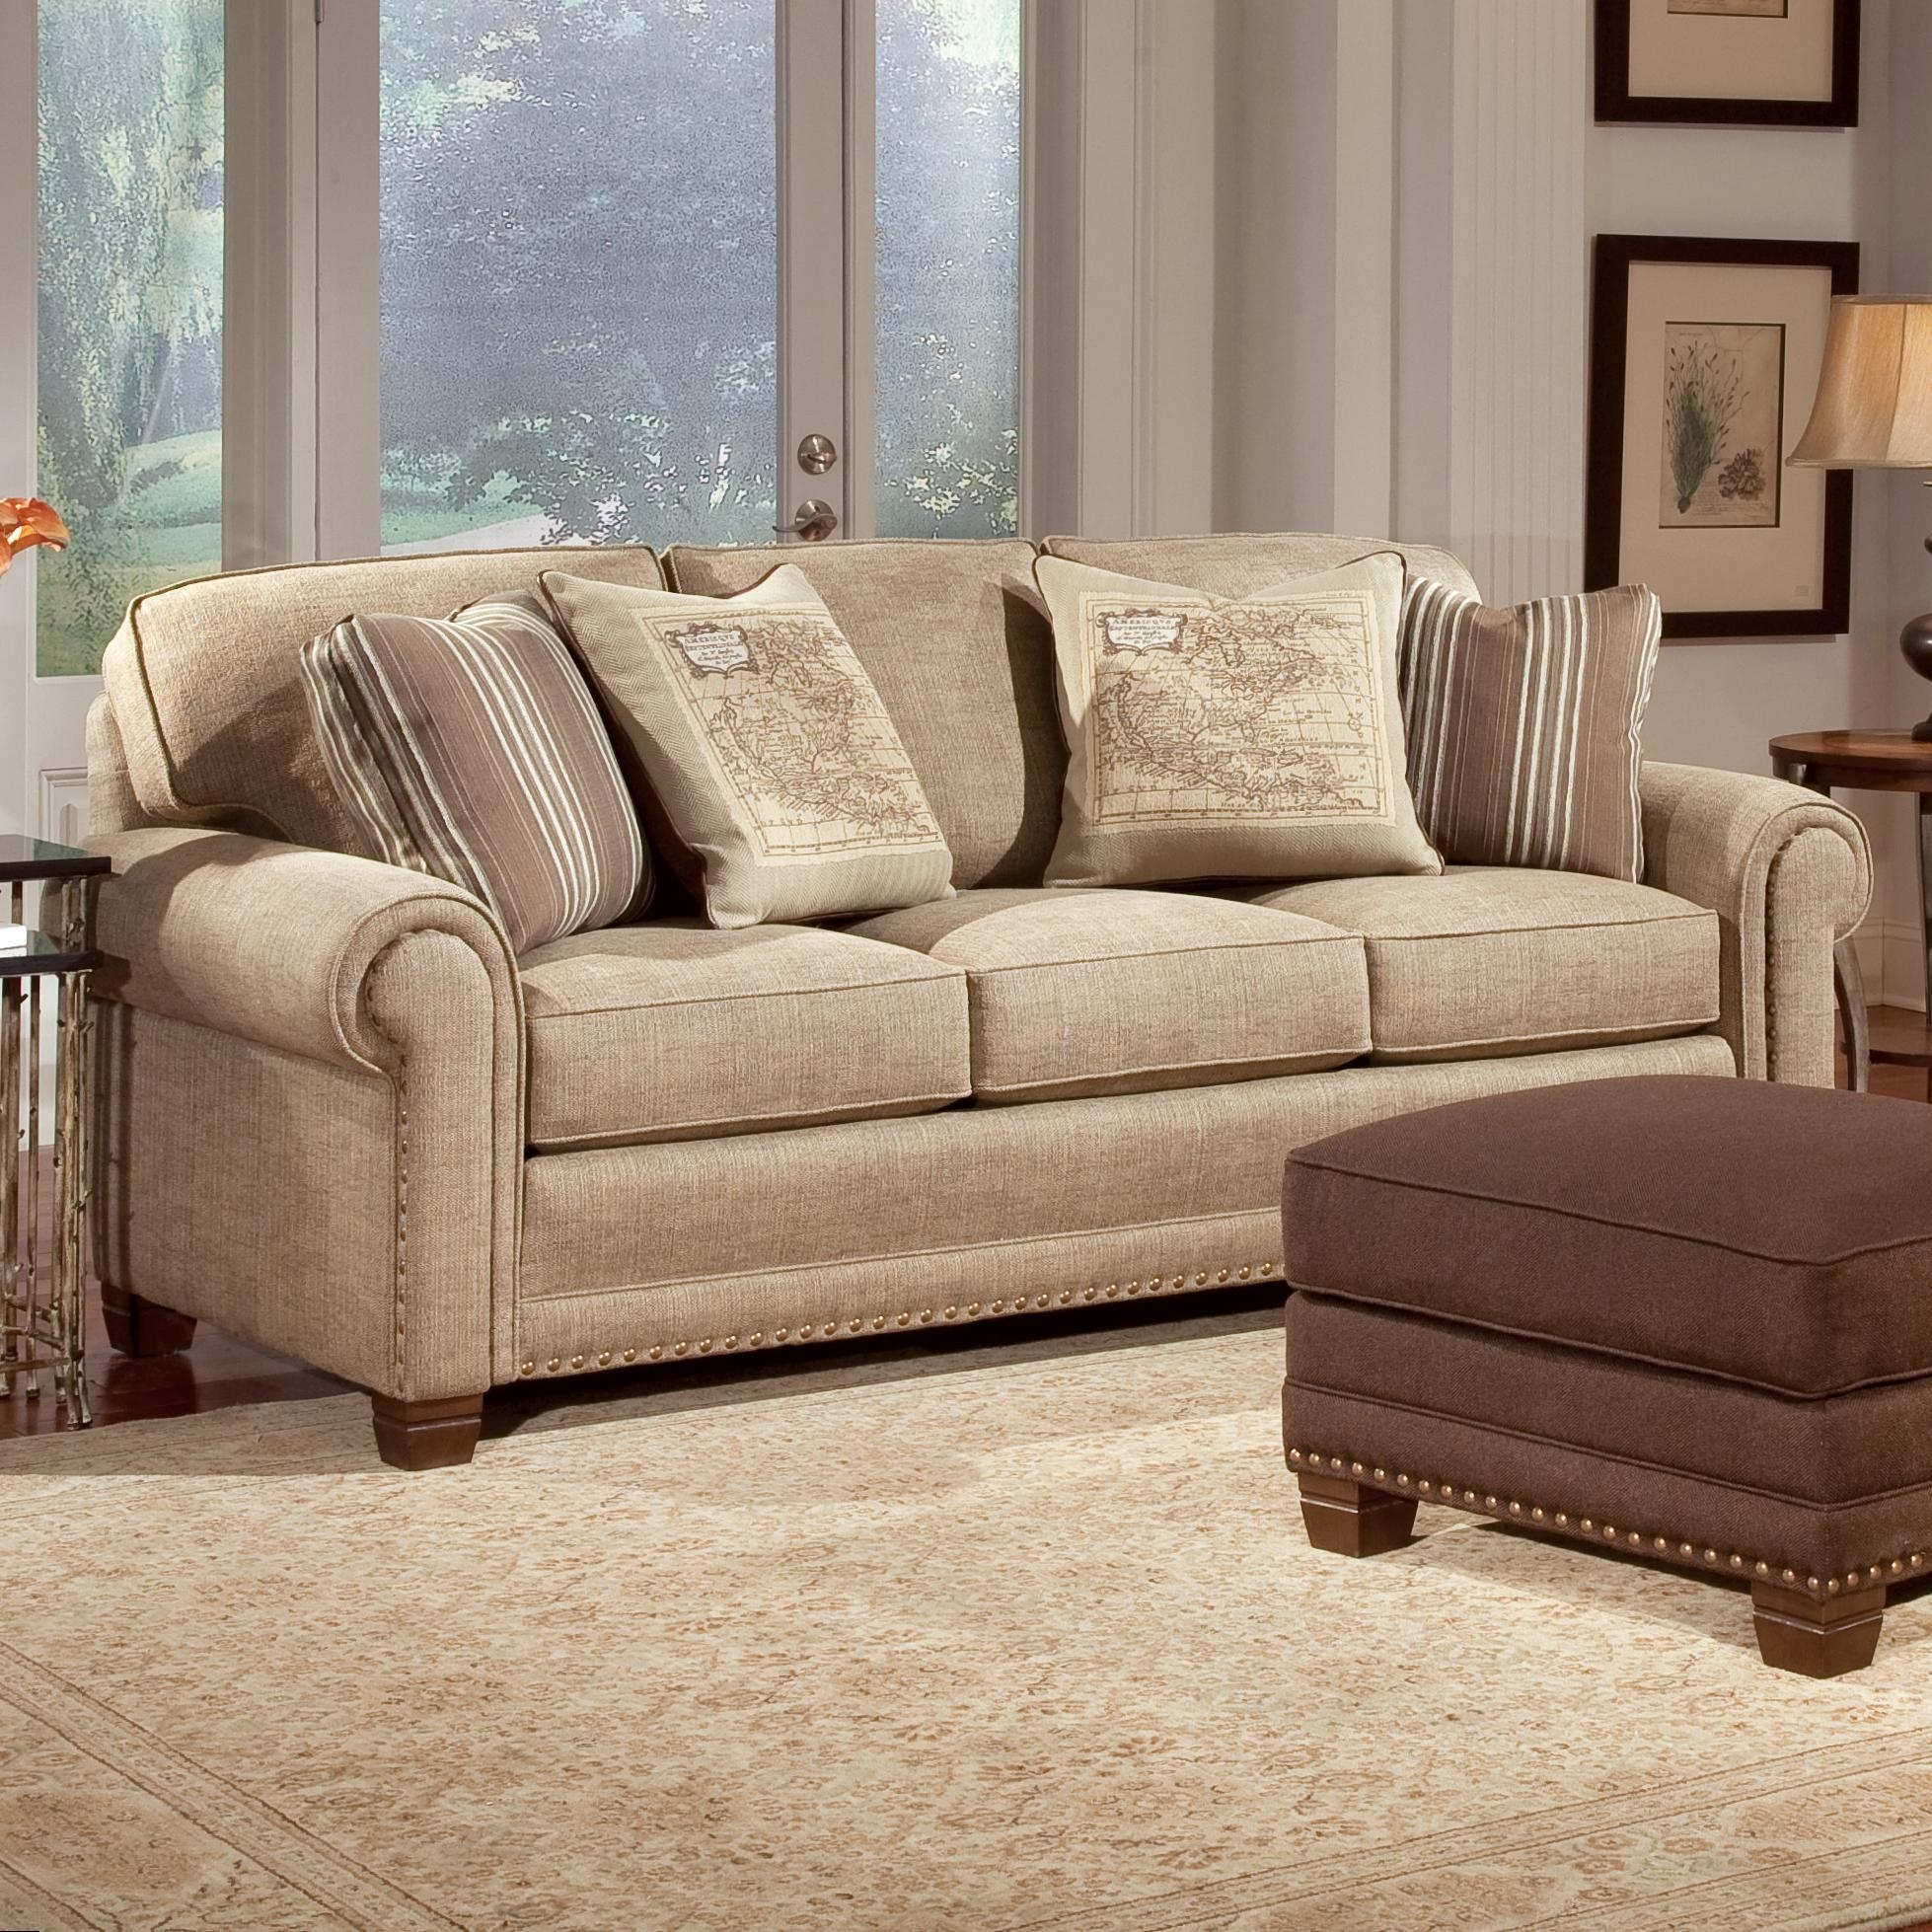 sofas etc towson md individual 2 piece t cushion sofa slipcover 20 ideas of maryland